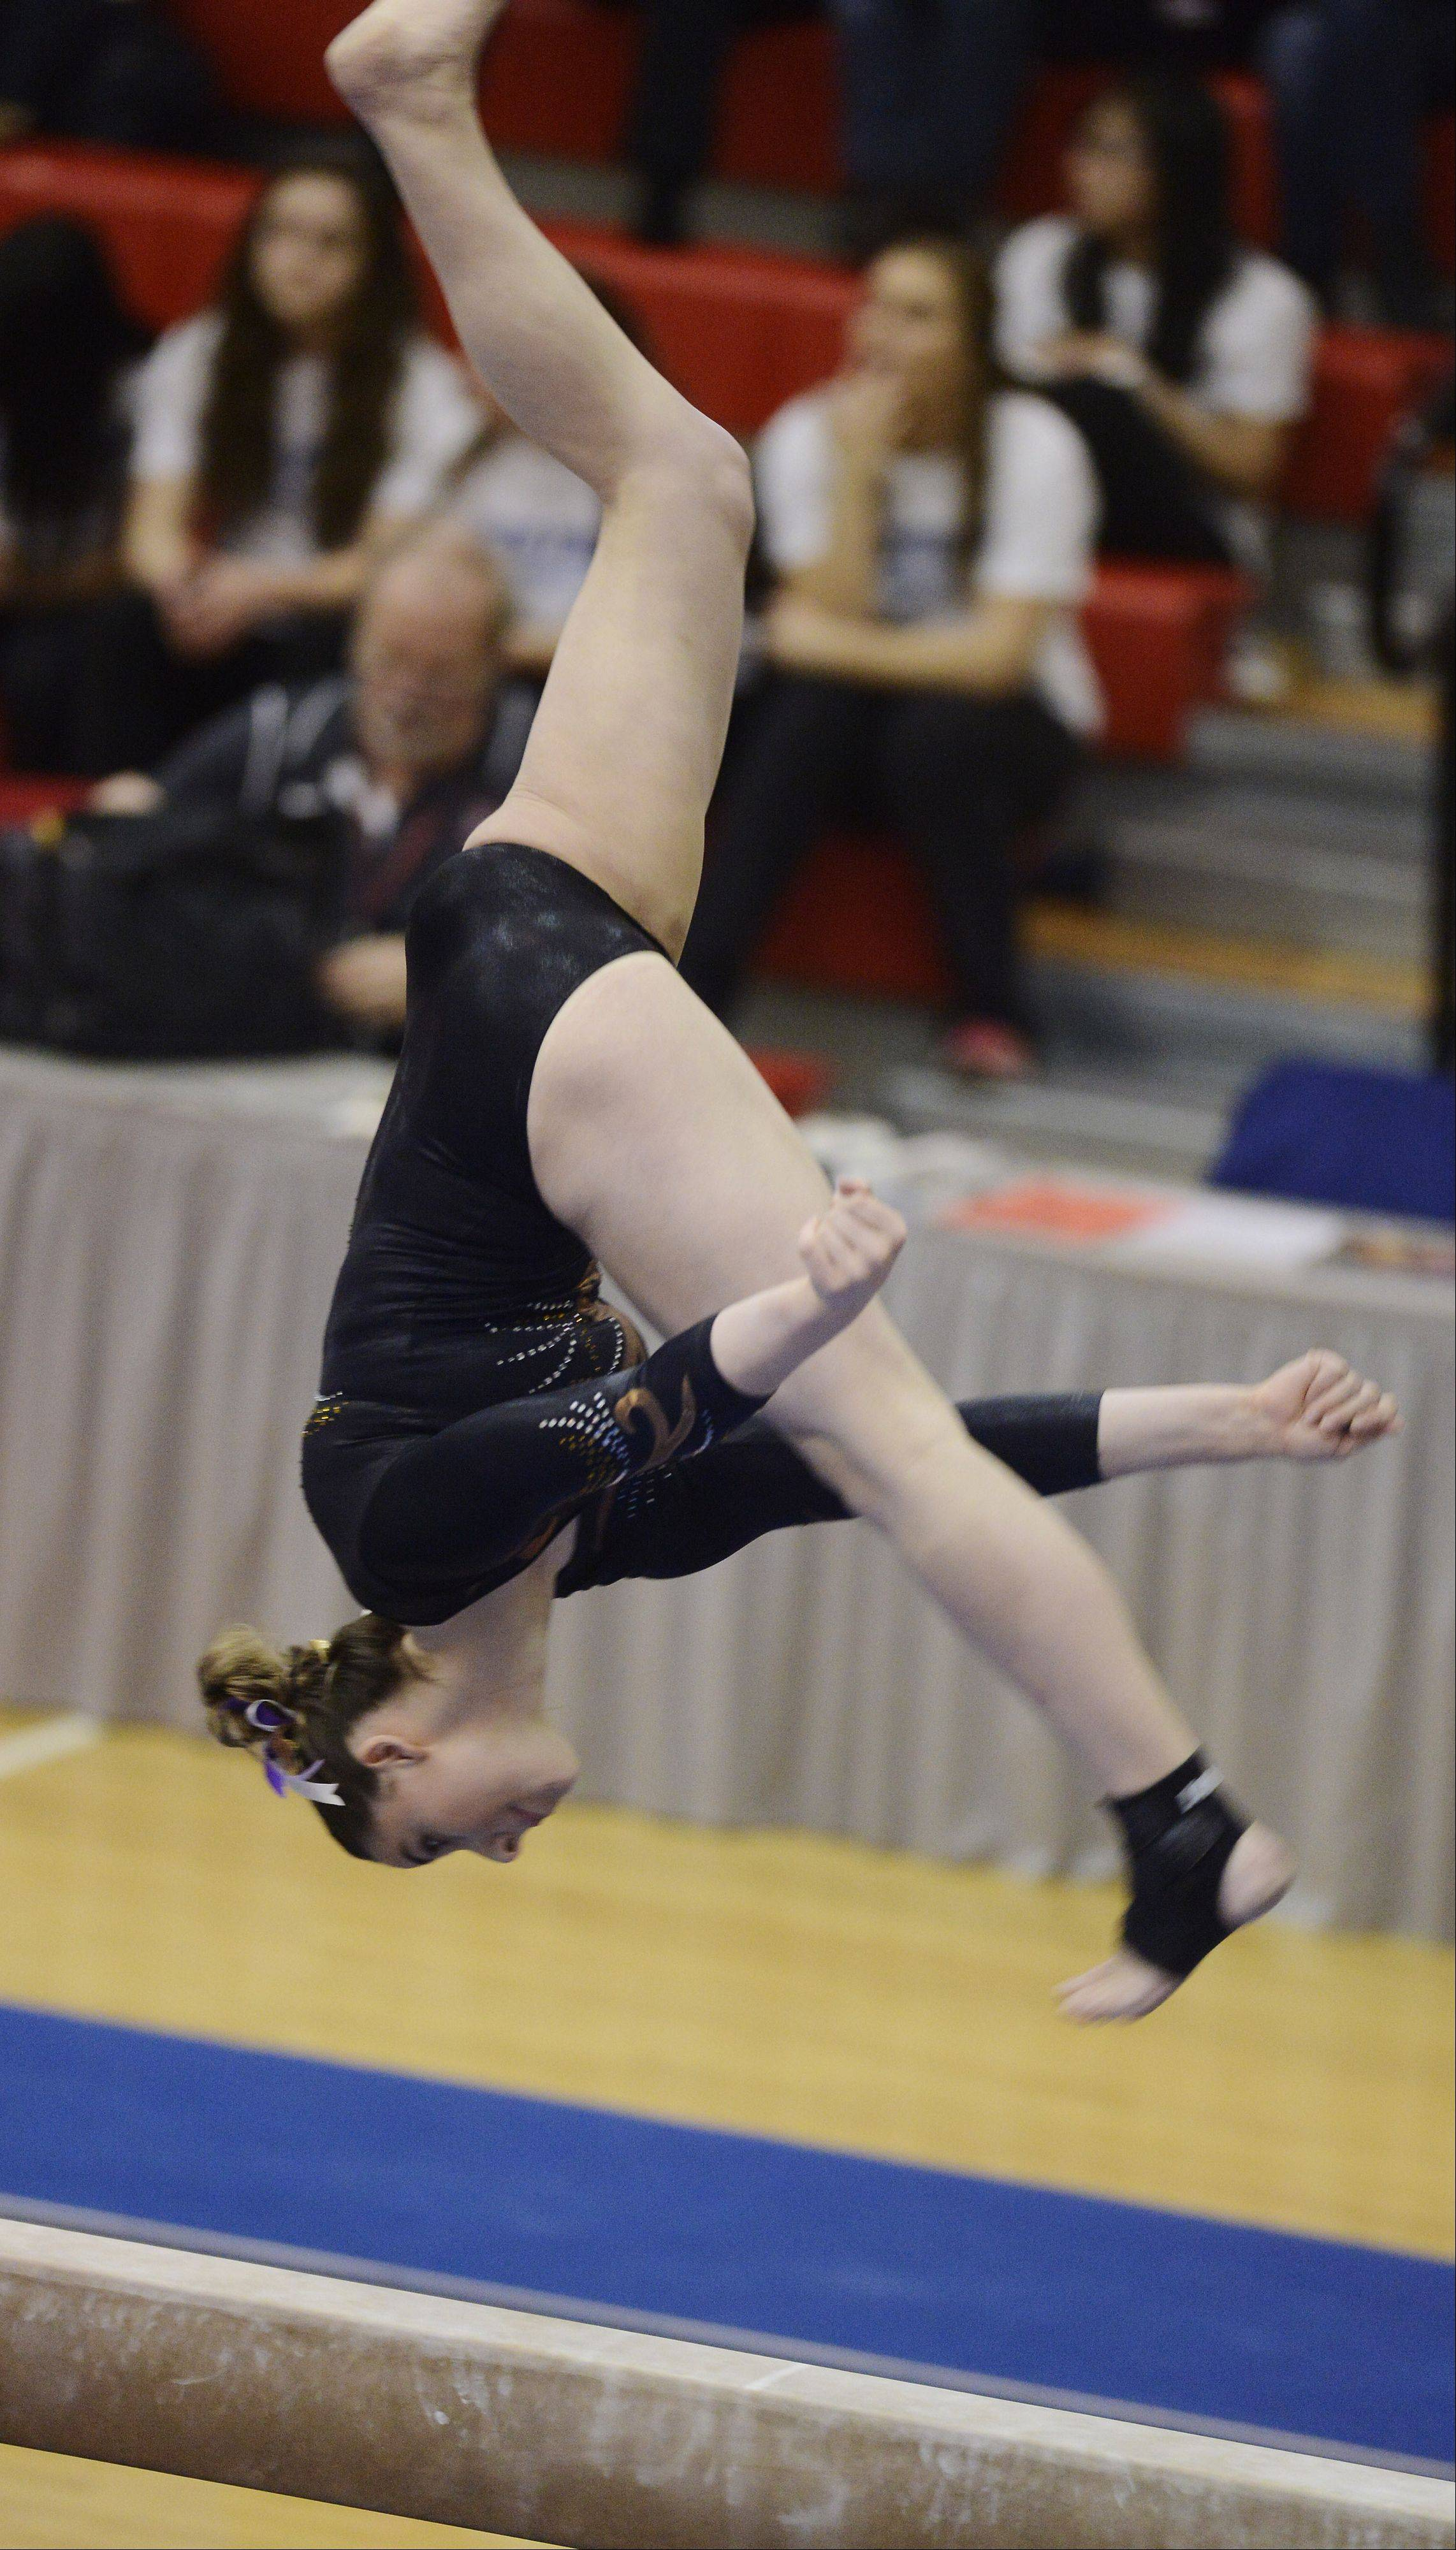 Carmel's Lauren Feely competes on the balance beam during the girls gymnastics state preliminaries at Palatine High School on Friday.